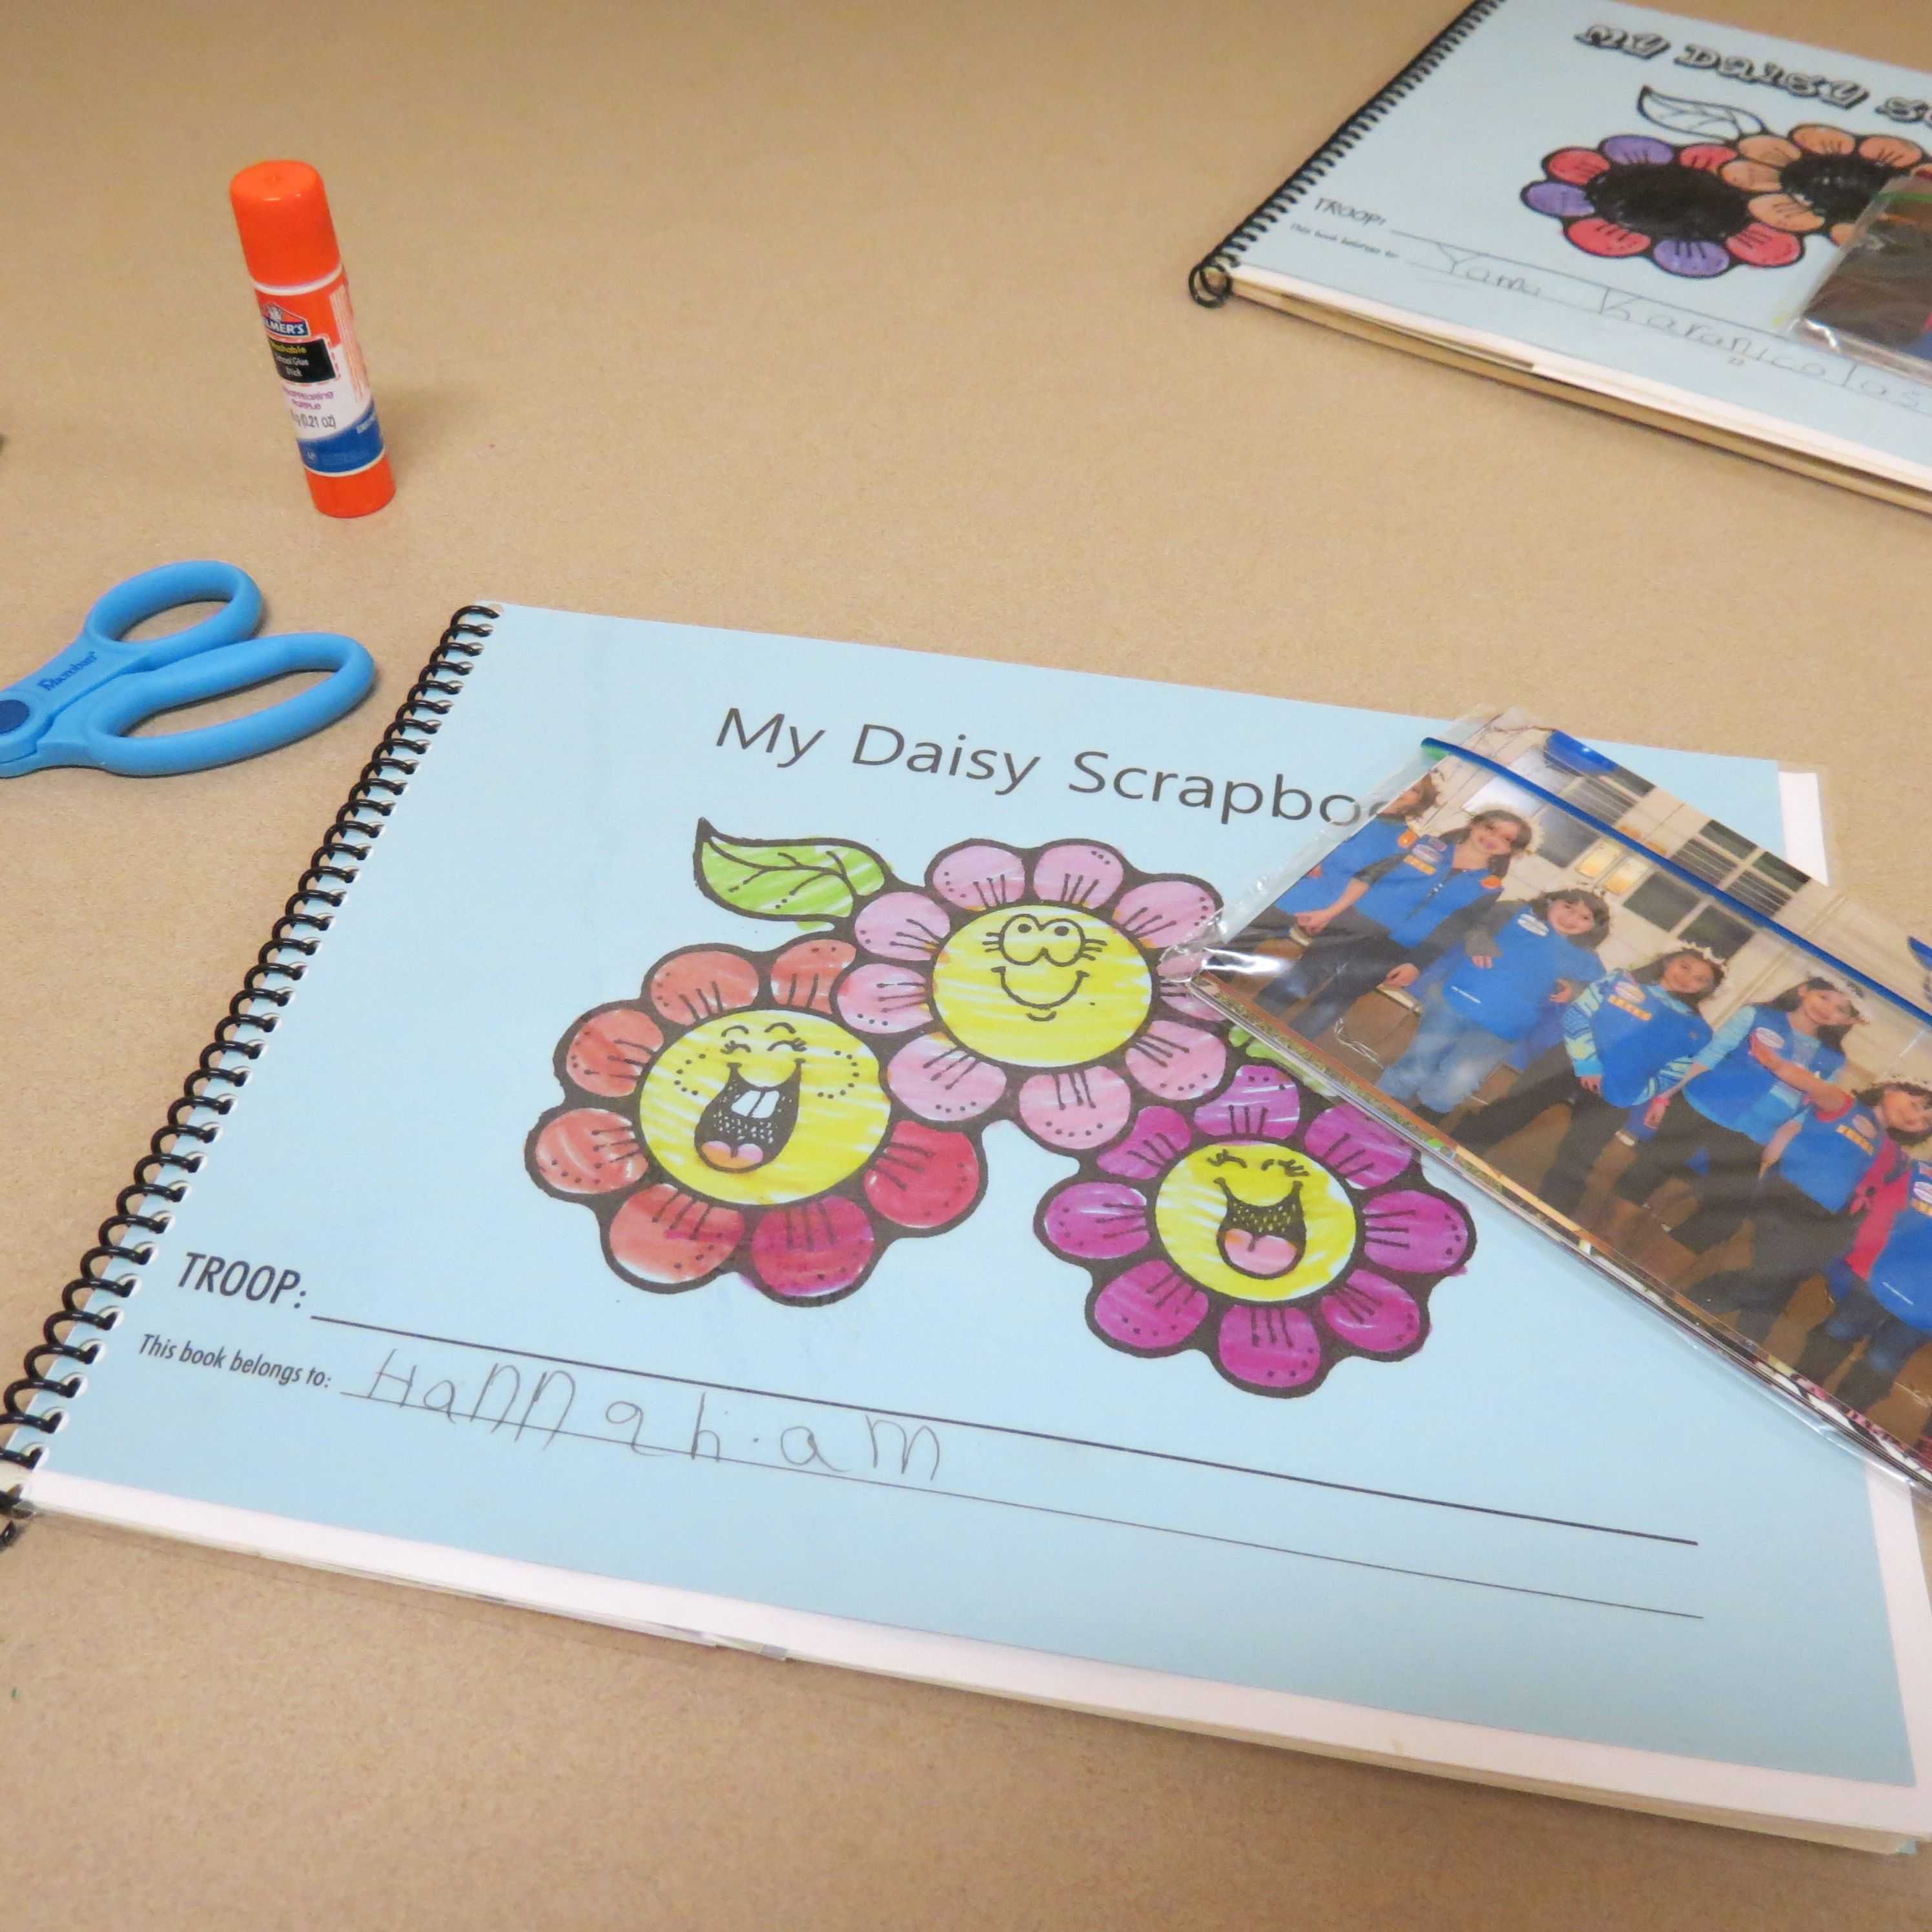 Girl scout scrapbook ideas - Girl Scout Scrapbook Every Couple Weeks The Girls Have A Chance To Add Pictures From